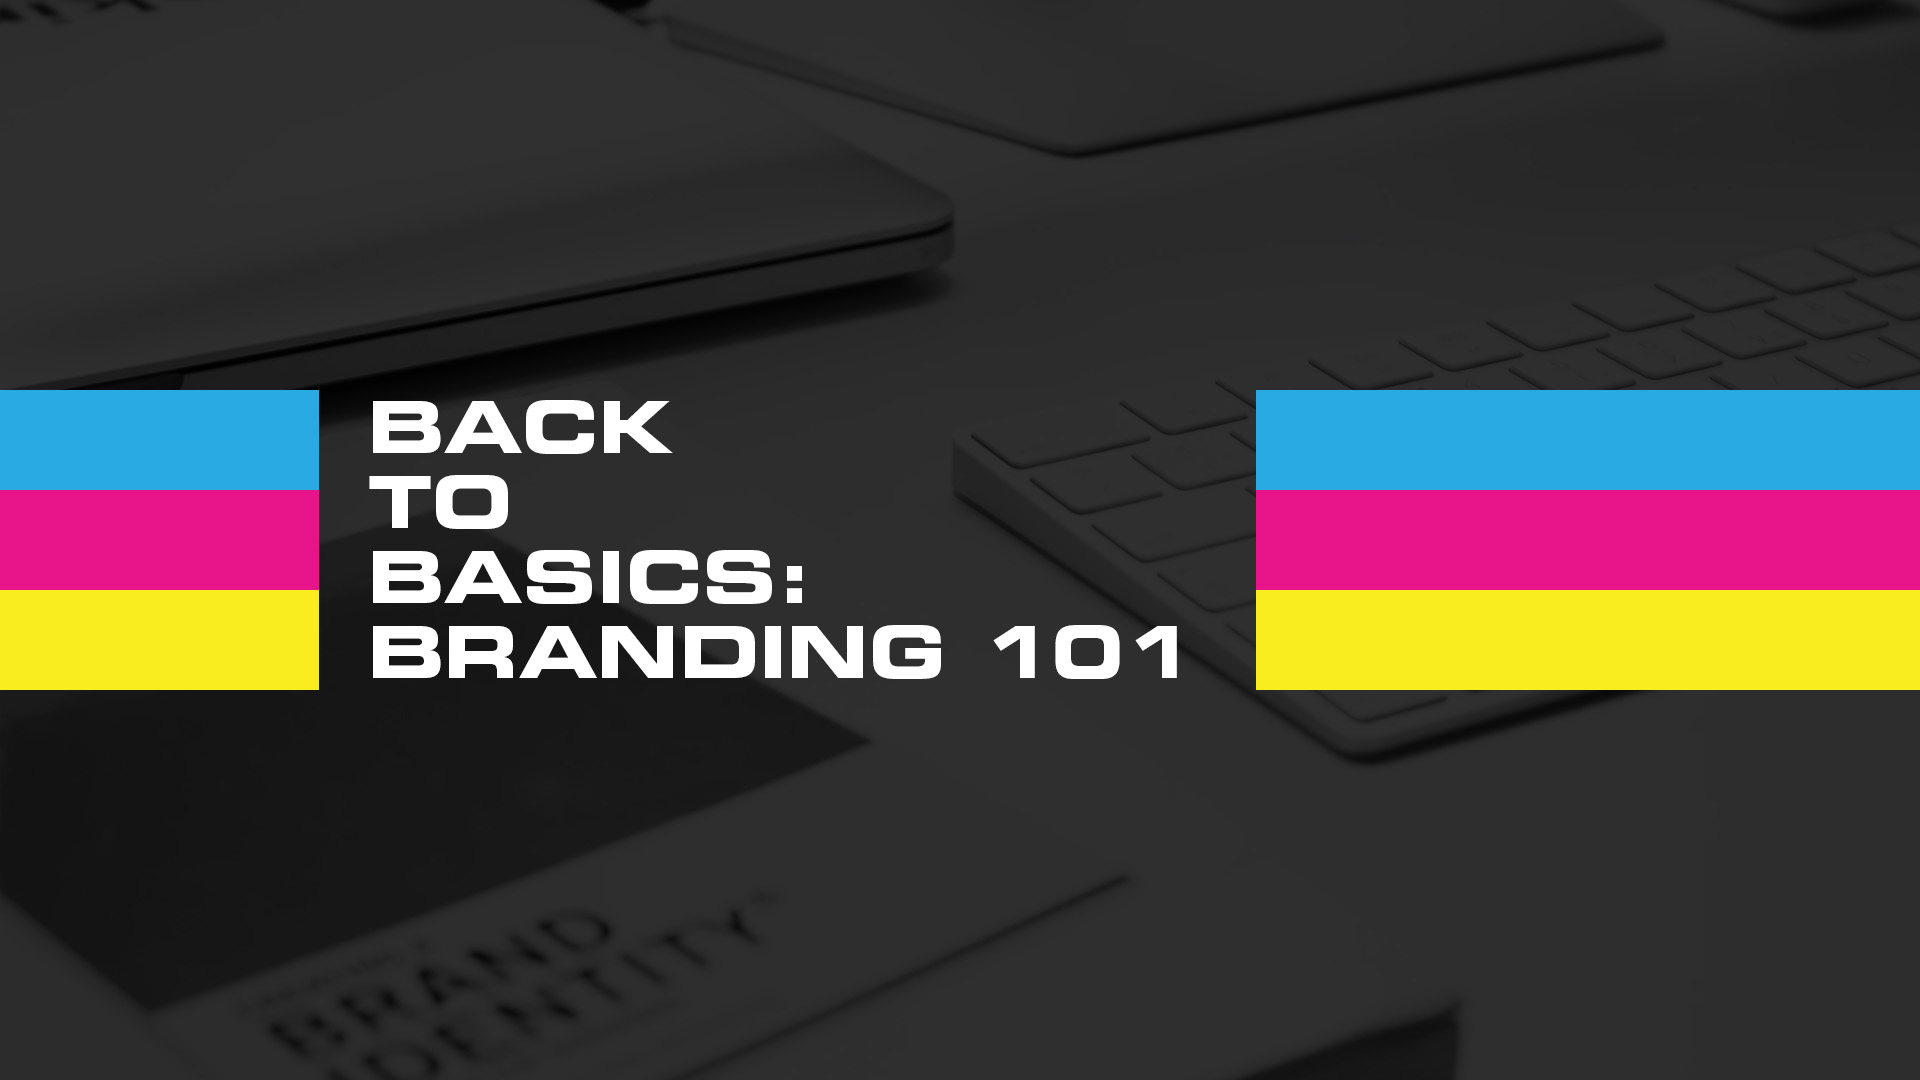 Back to Basics: Brand 101